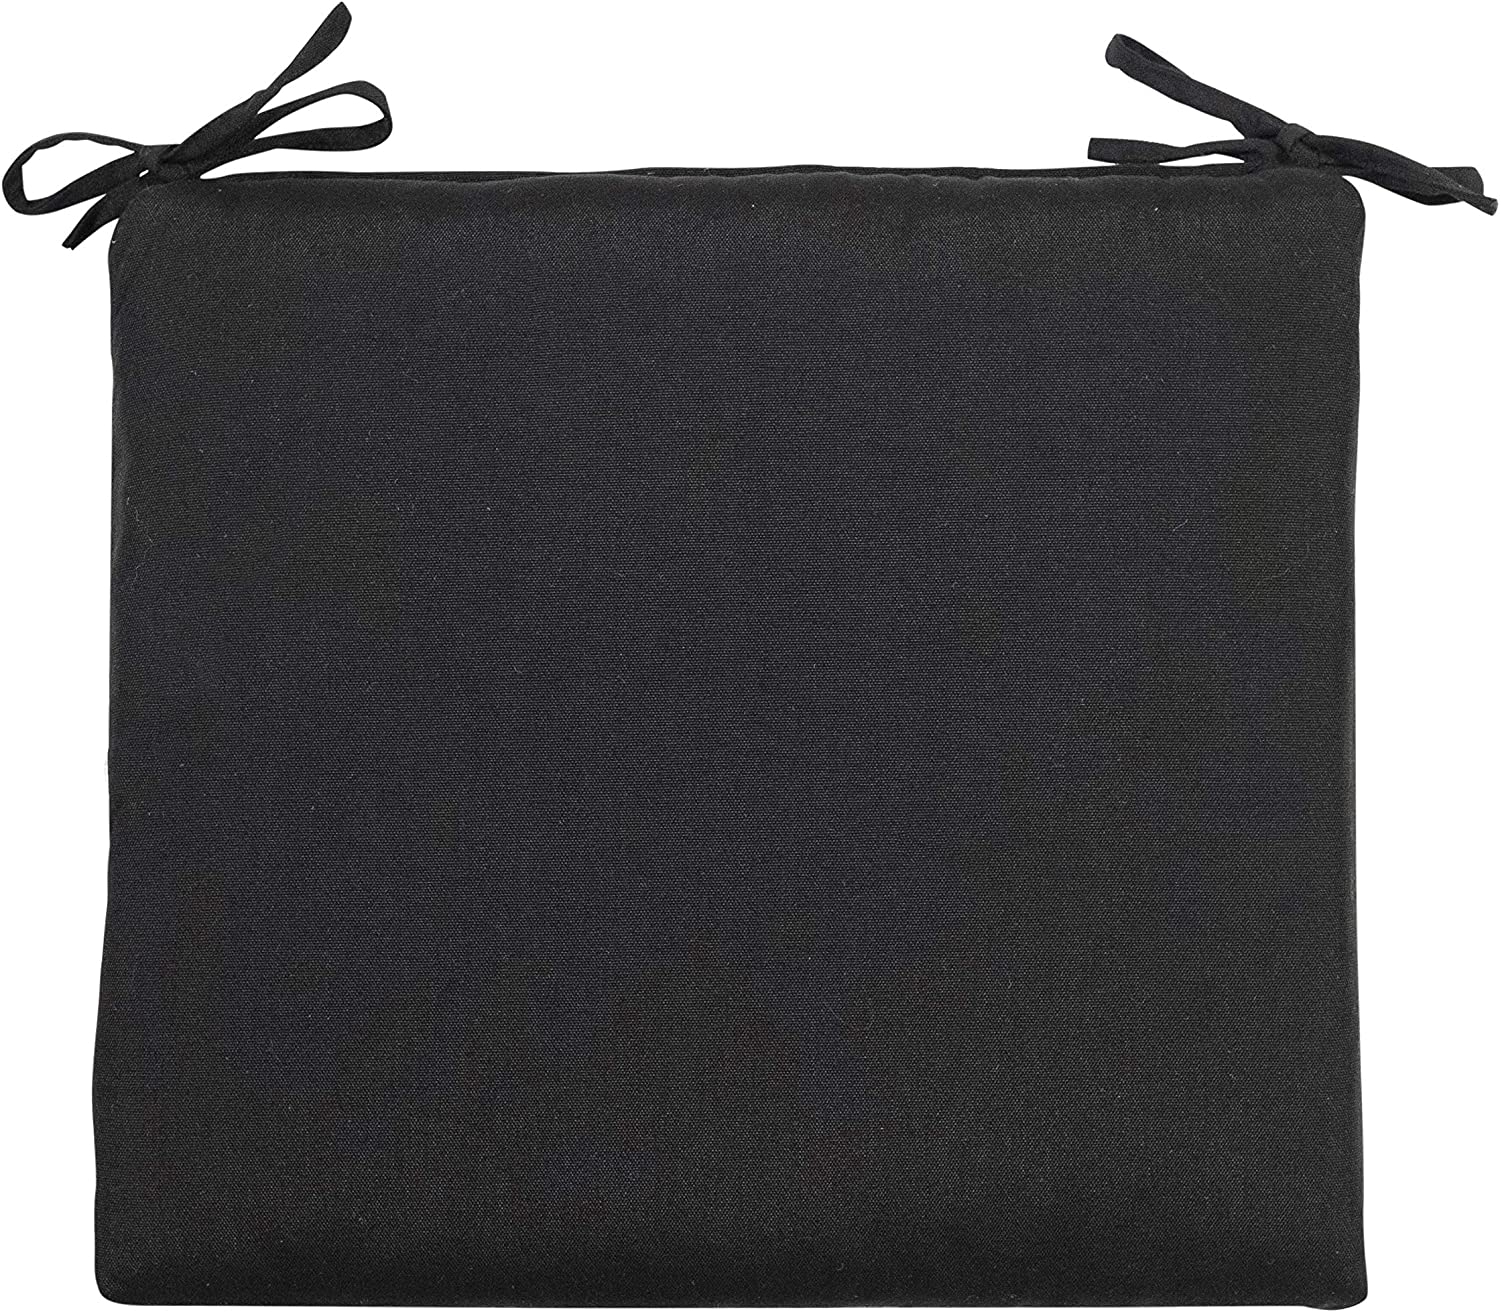 Decor Therapy 7743-01103537 Outdoor Seat Cushion, Black